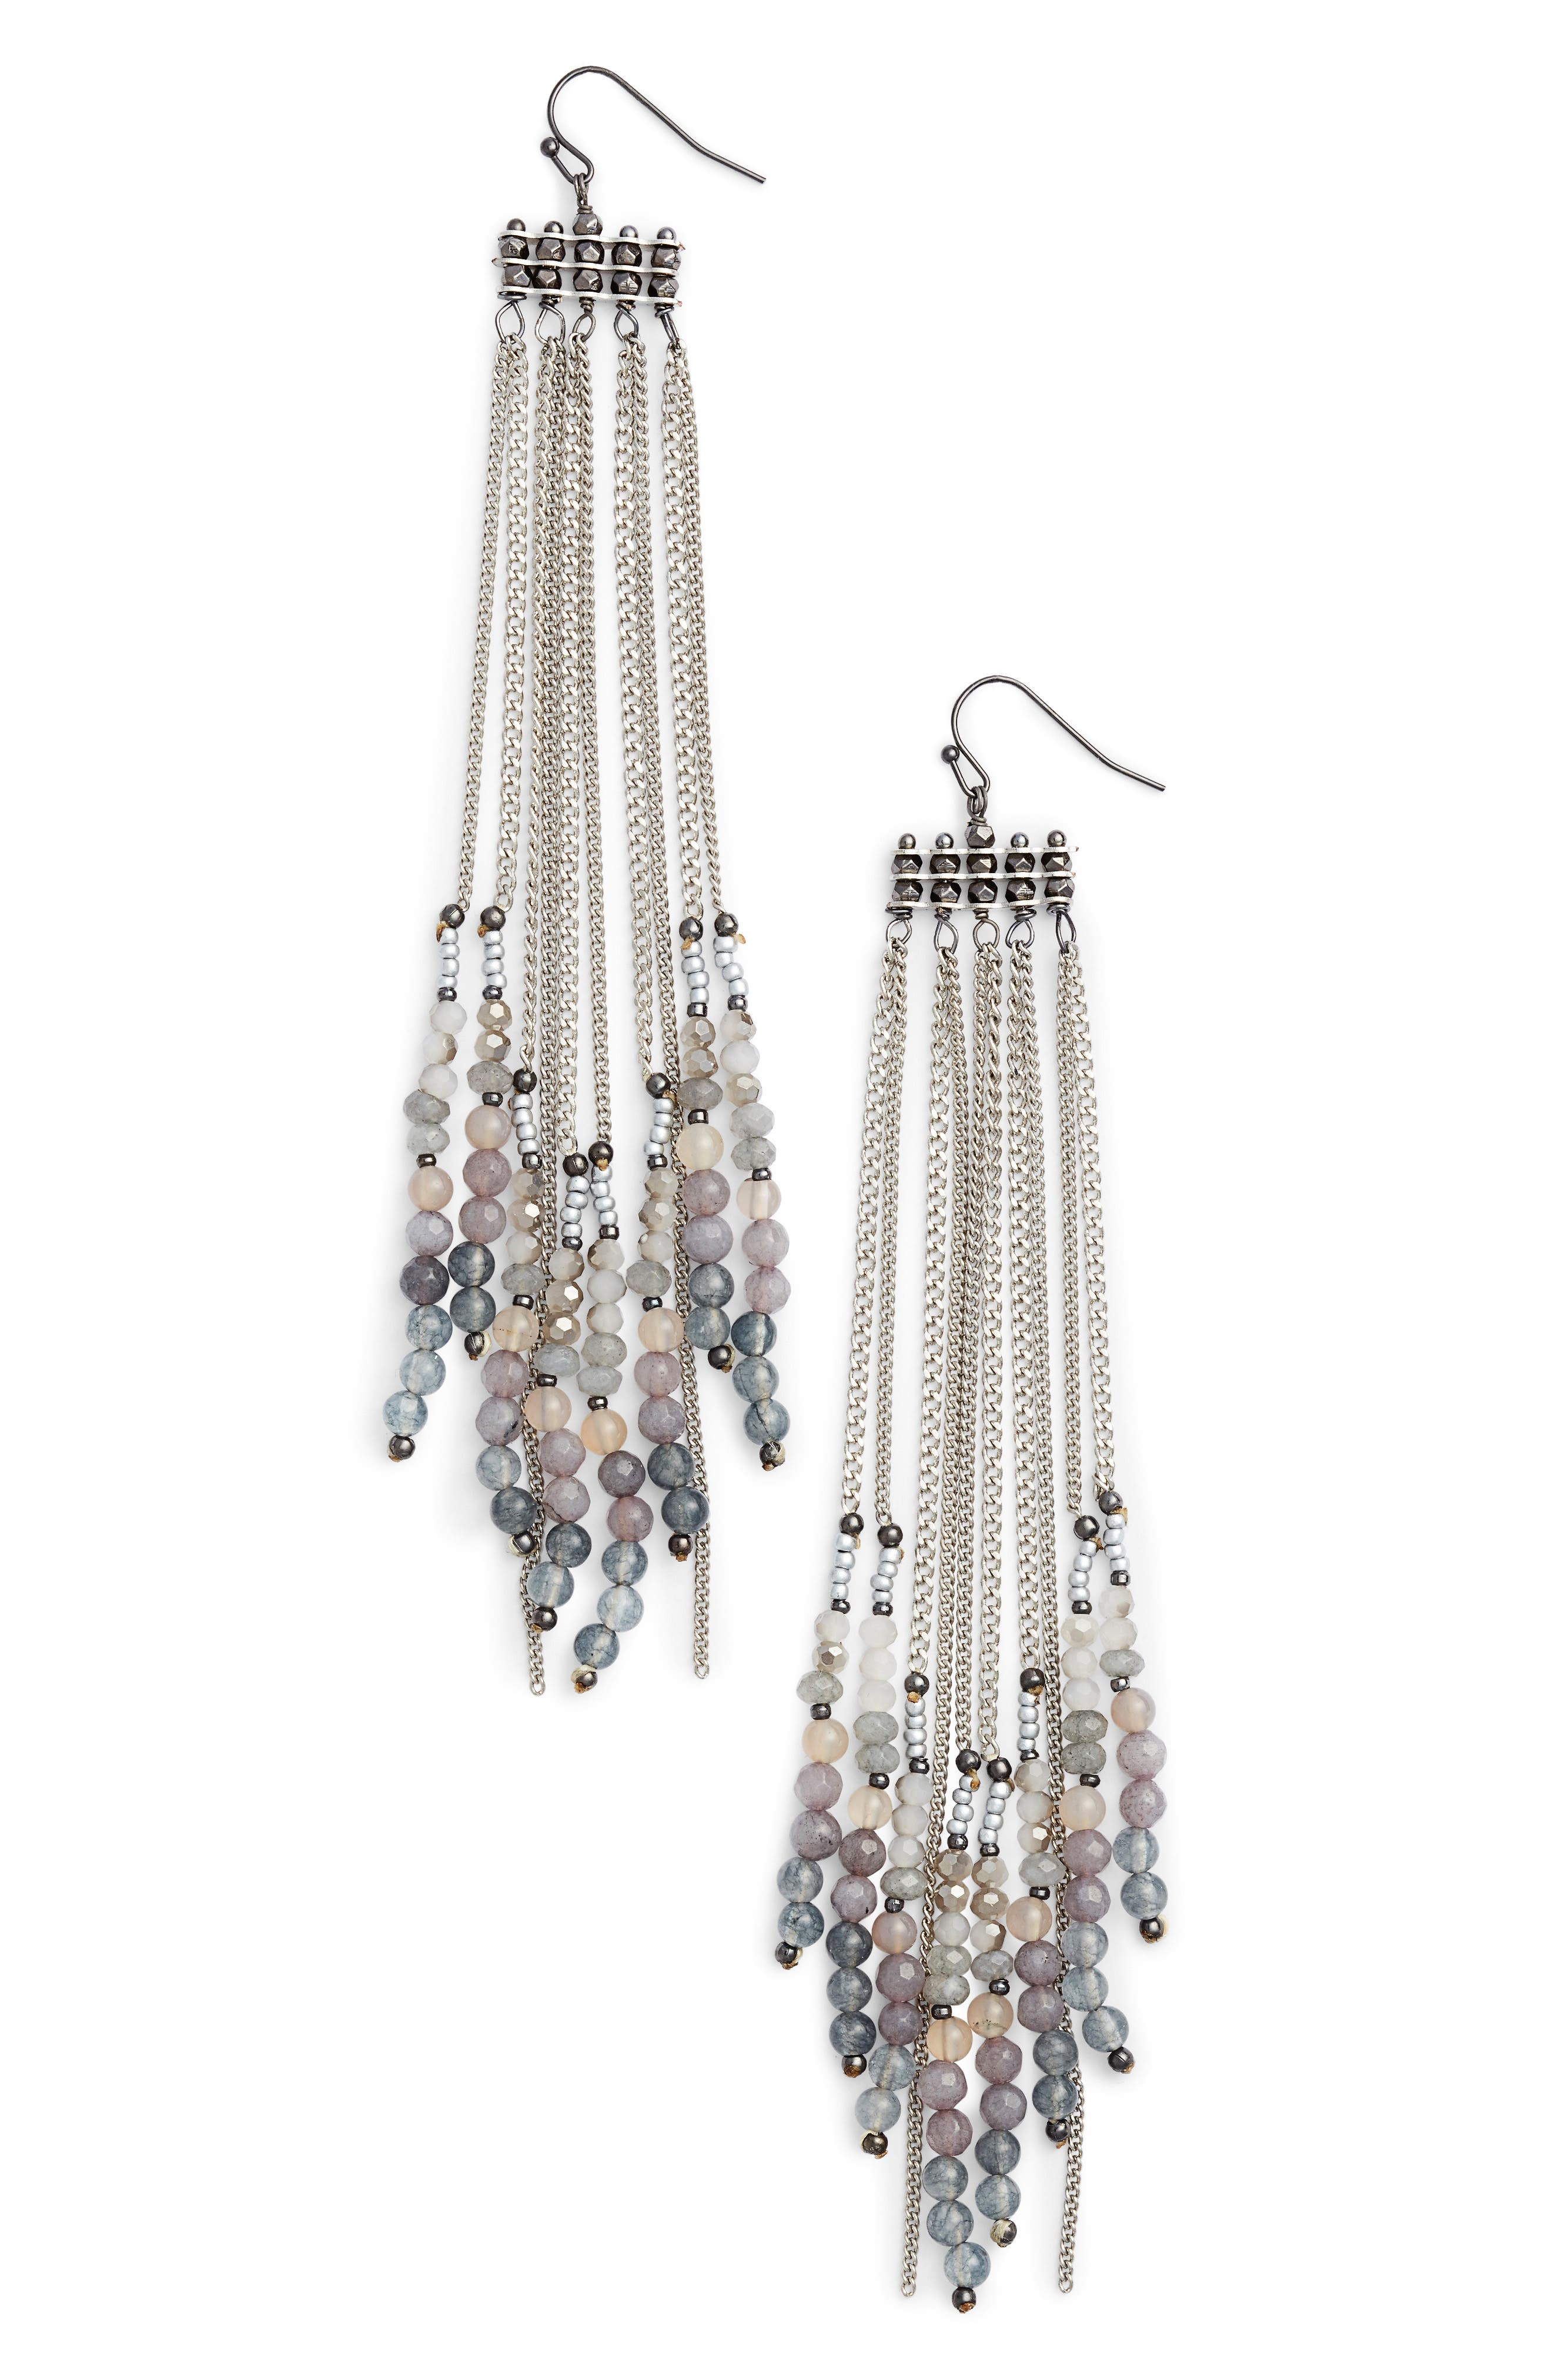 Chain Shoulder Duster Earrings,                         Main,                         color, Silver